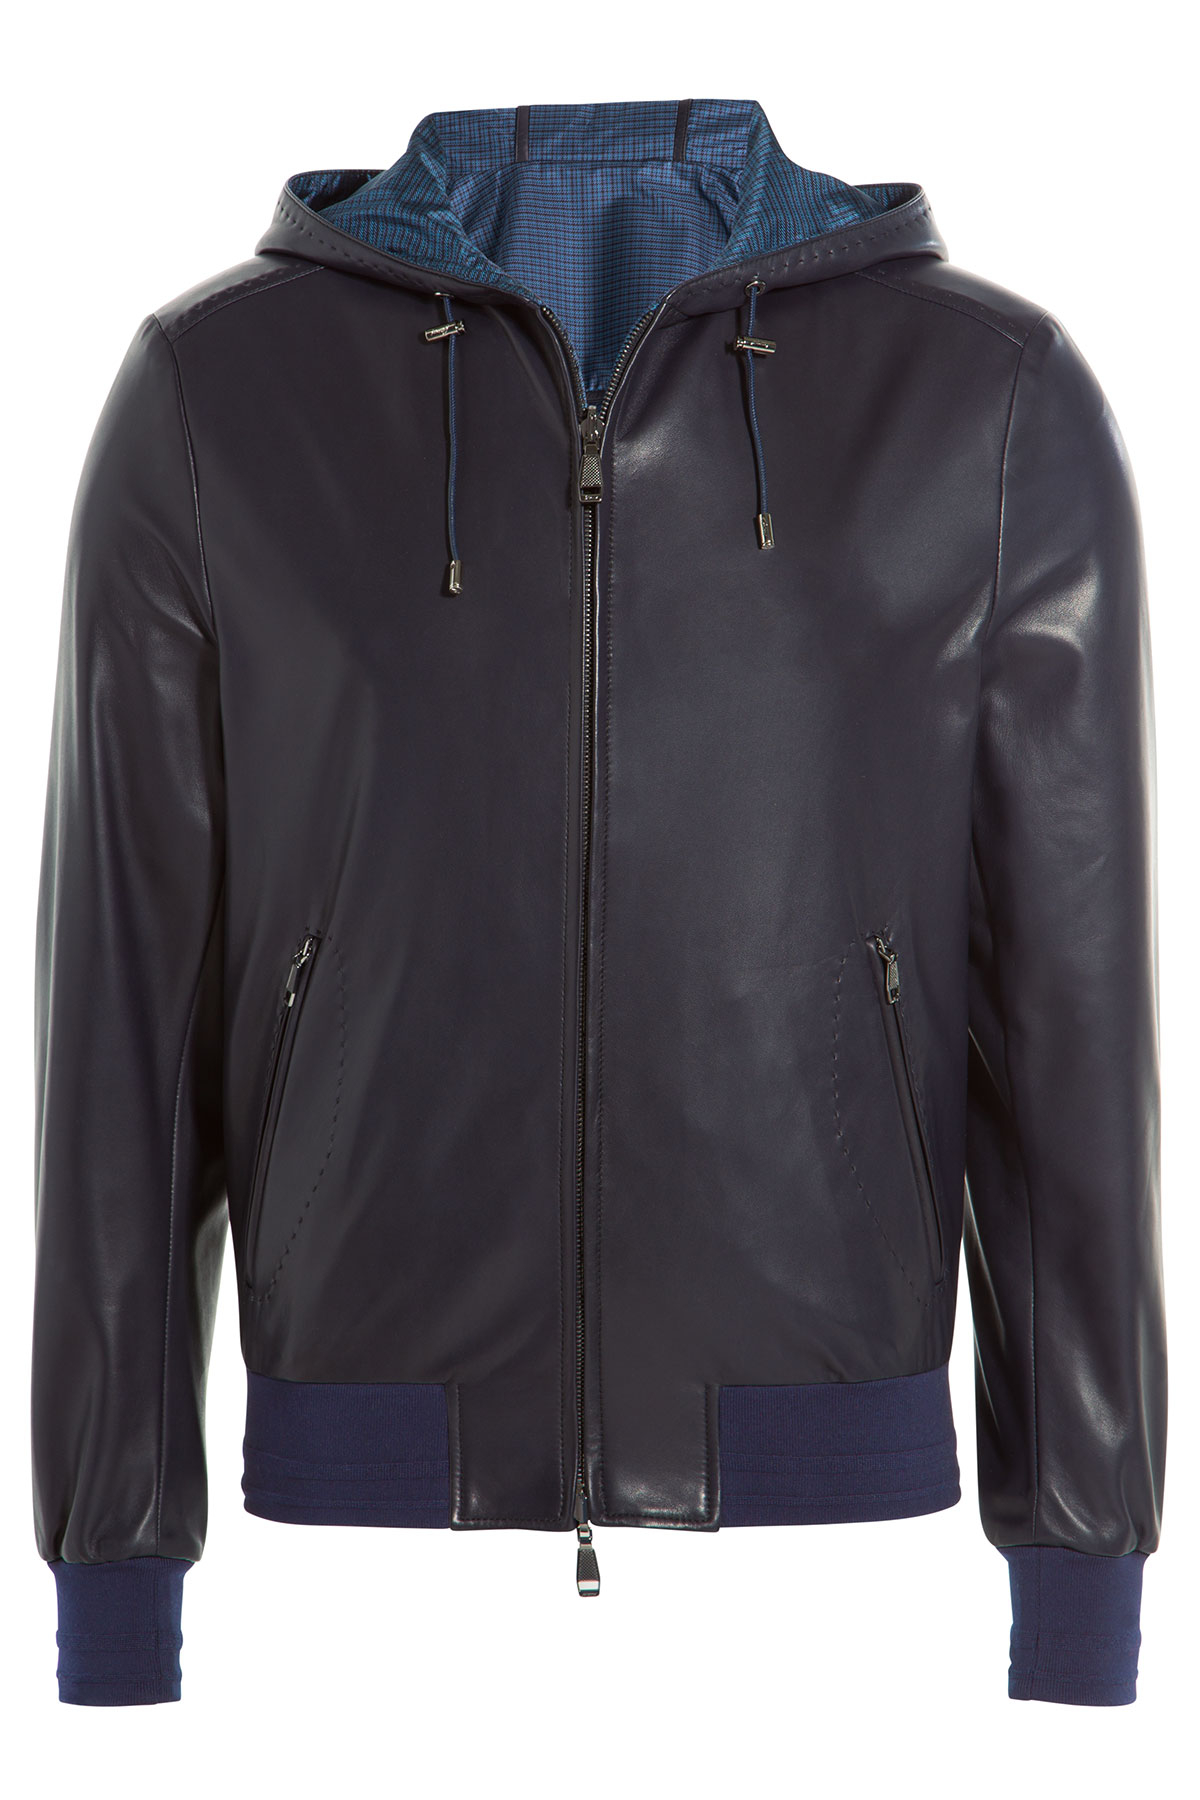 Brioni Leather Bomber Jacket With Hood in Blue for Men | Lyst